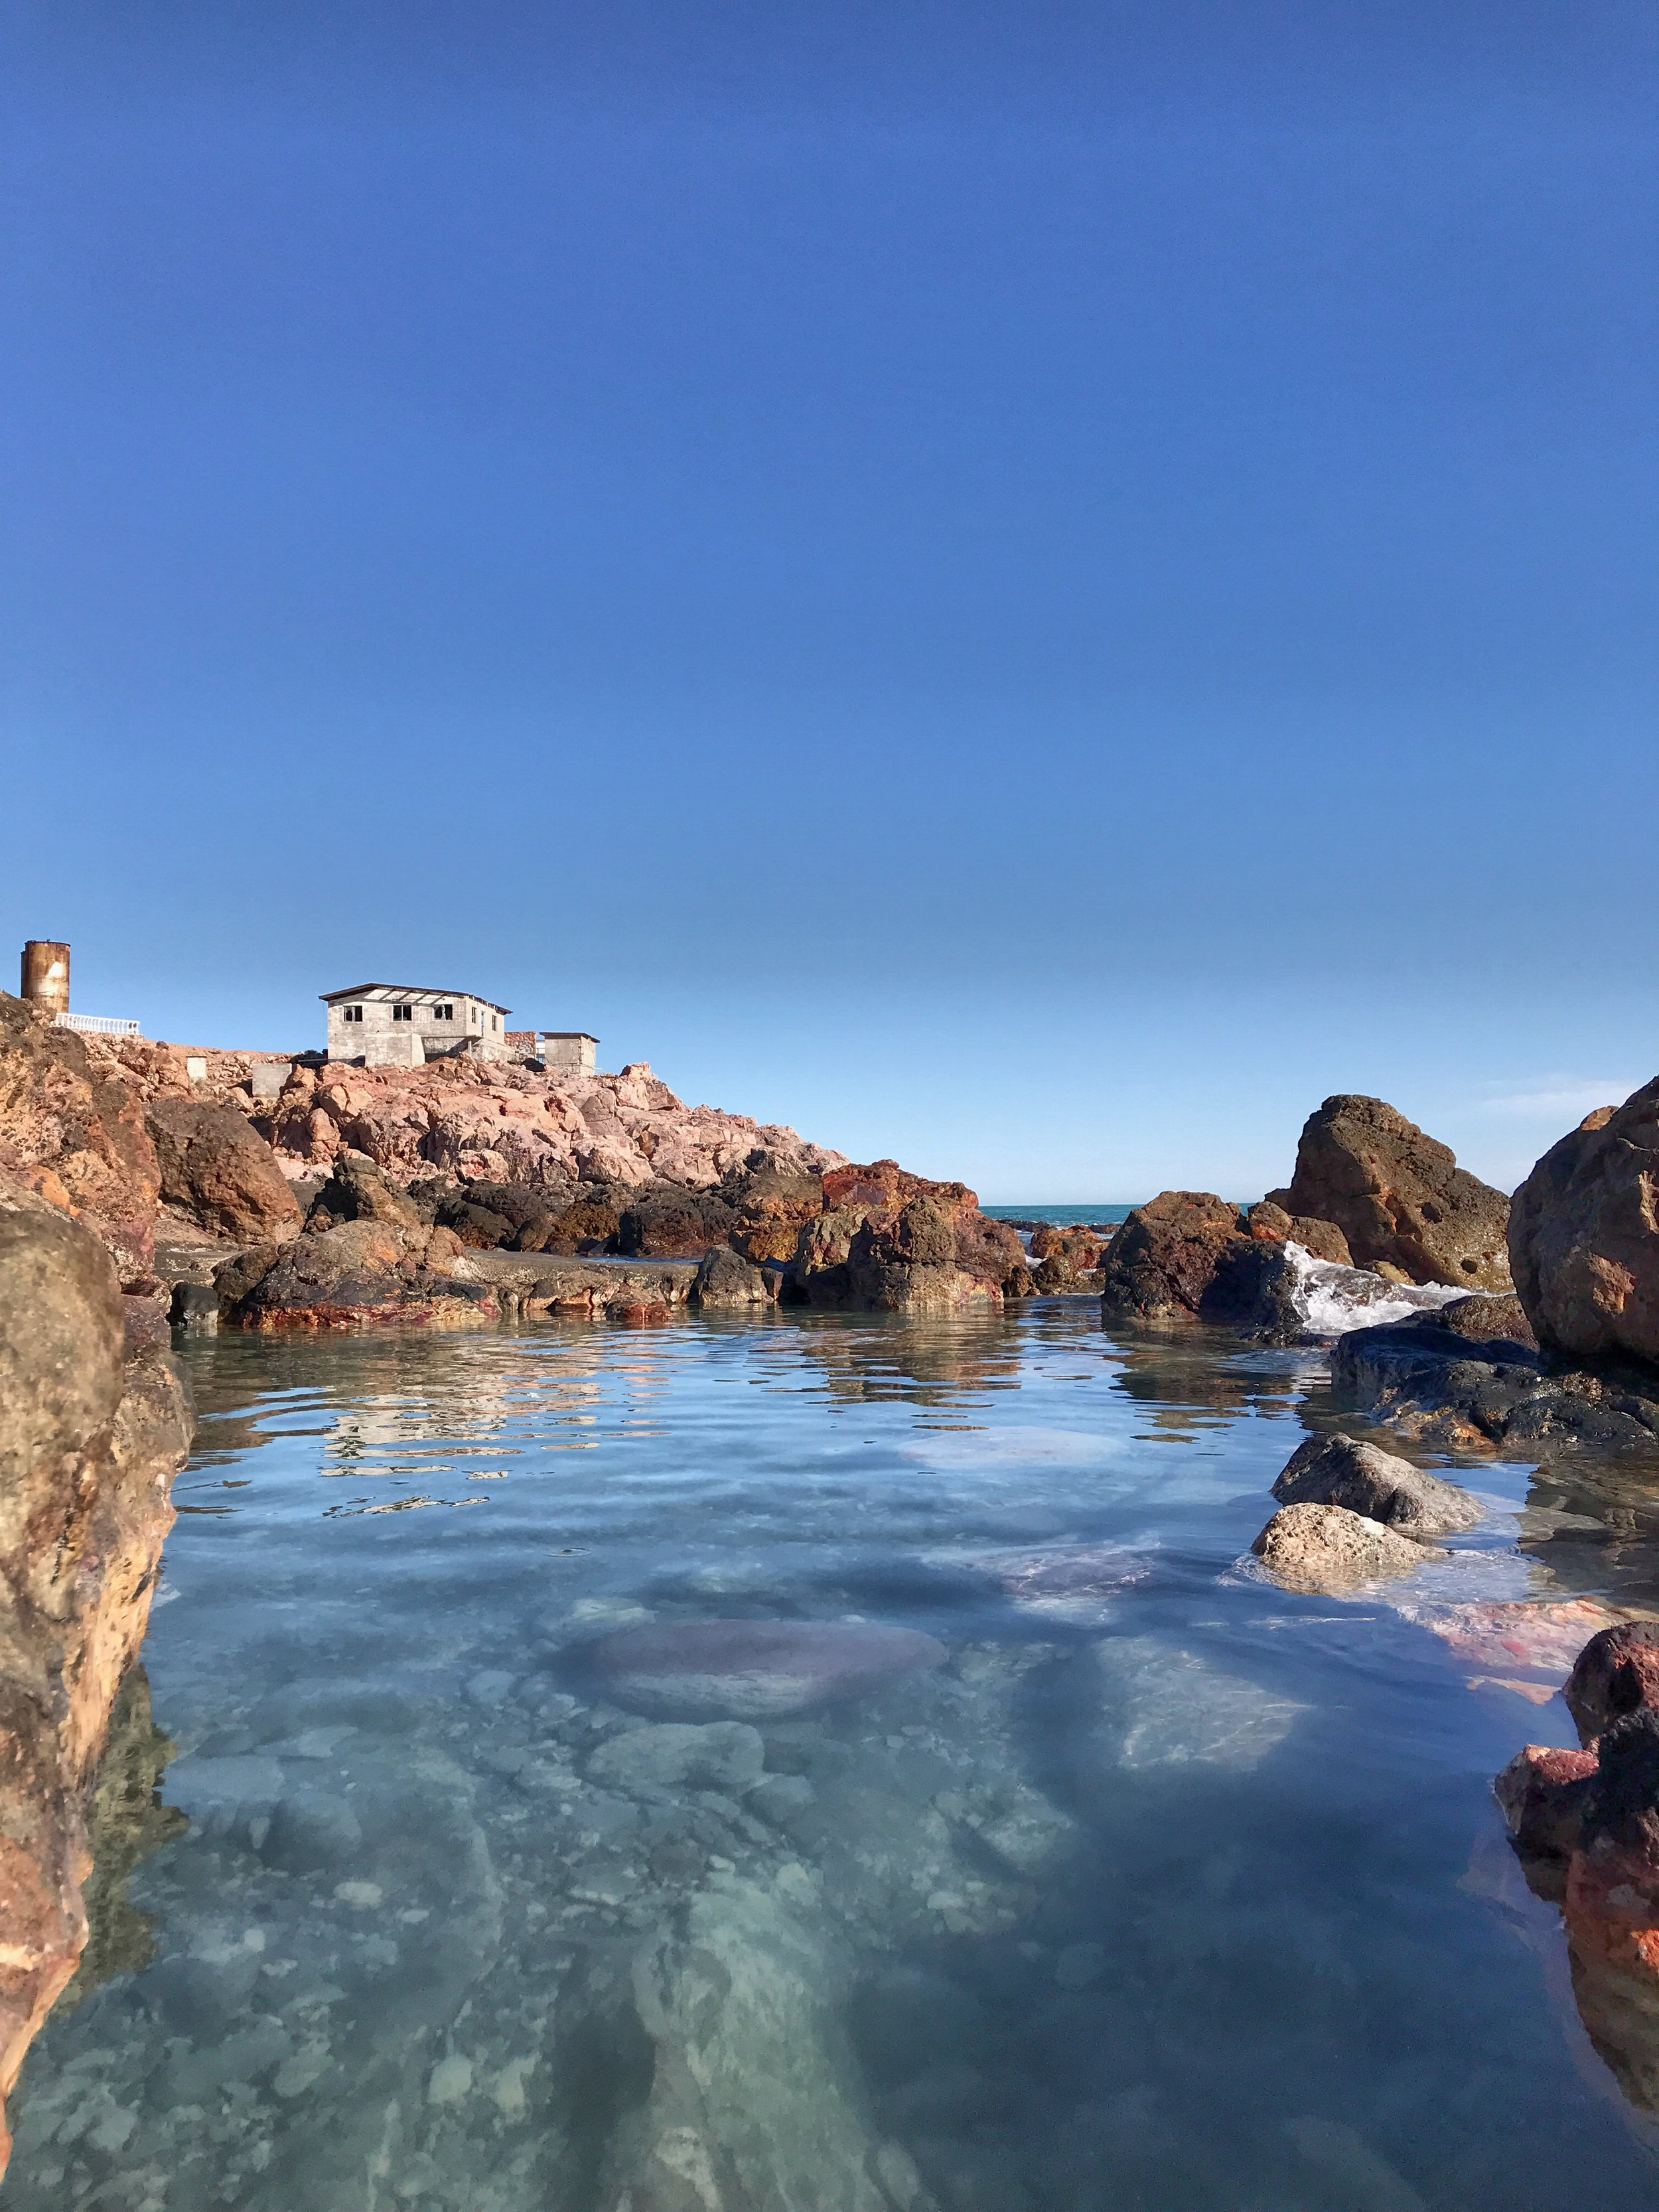 The perfect blend of hot springs mixed with sea water, at Puertecitos.